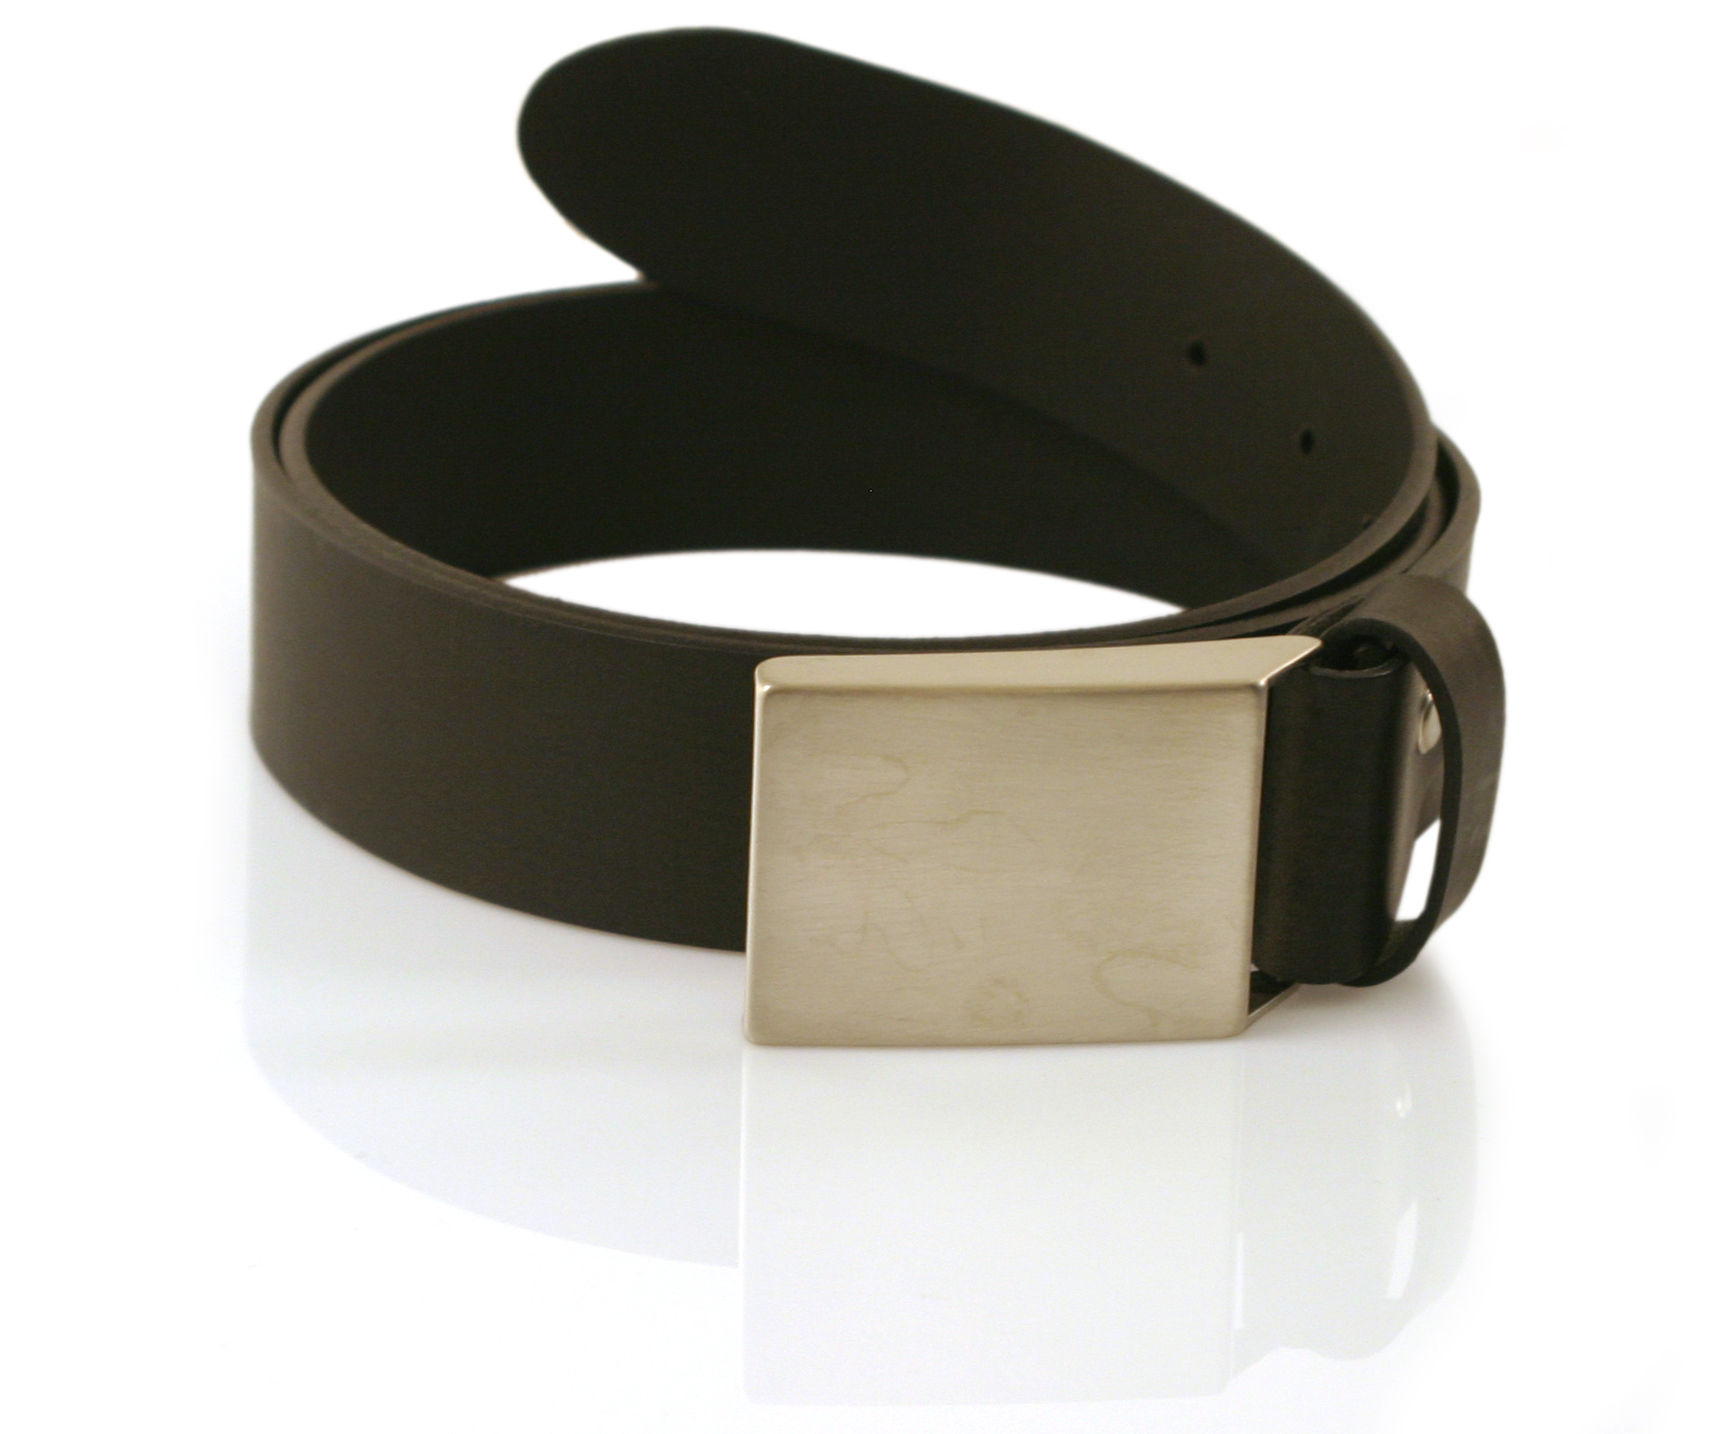 Fashion belt IB (black)